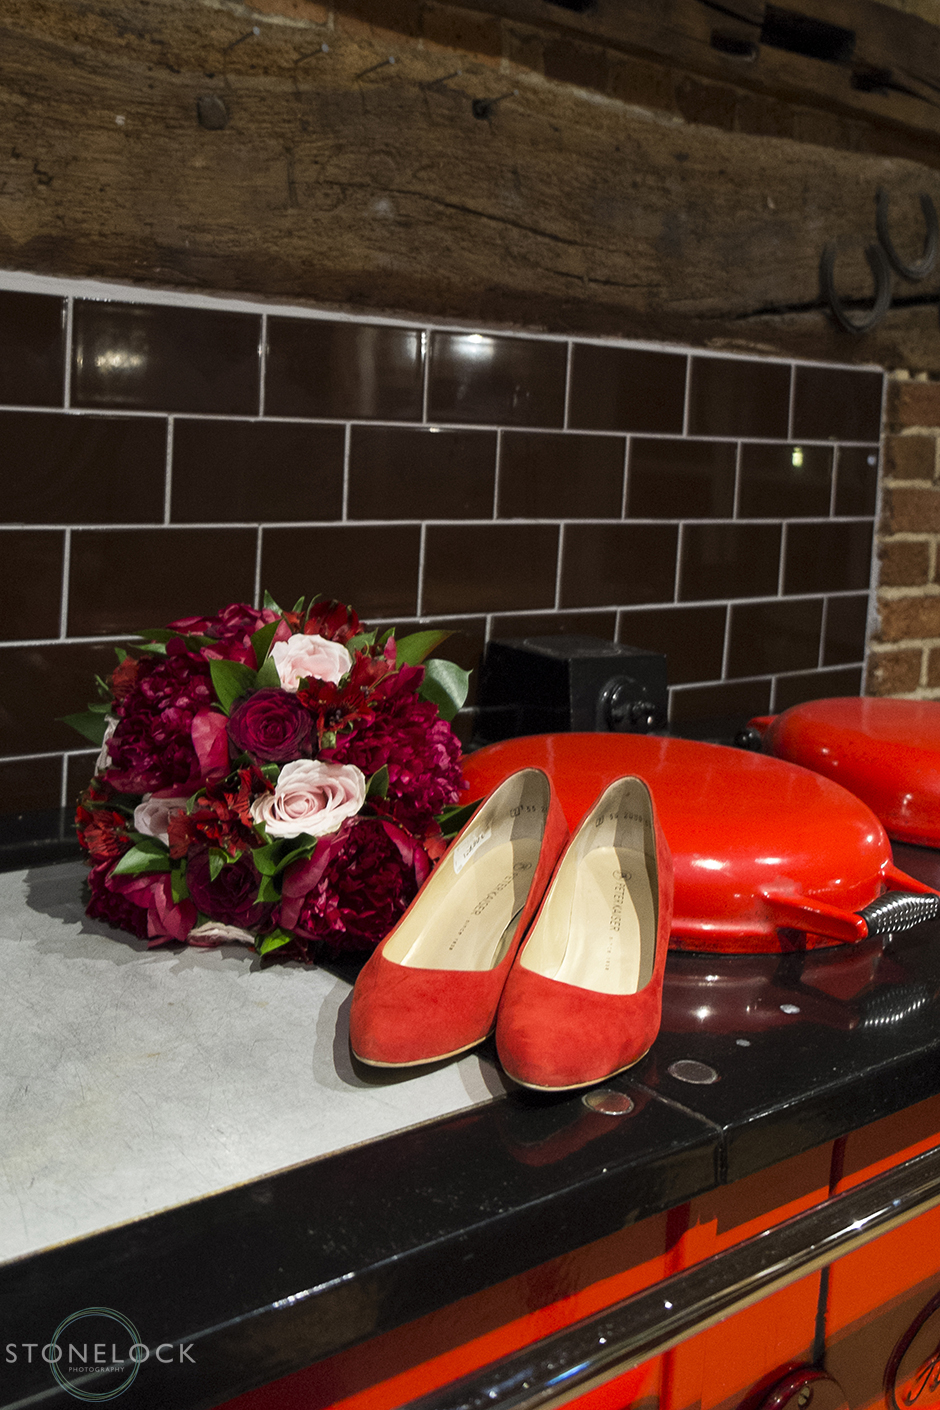 A brides red wedding shoes sit with her red flowers on a red age oven at the red barn in Surrey